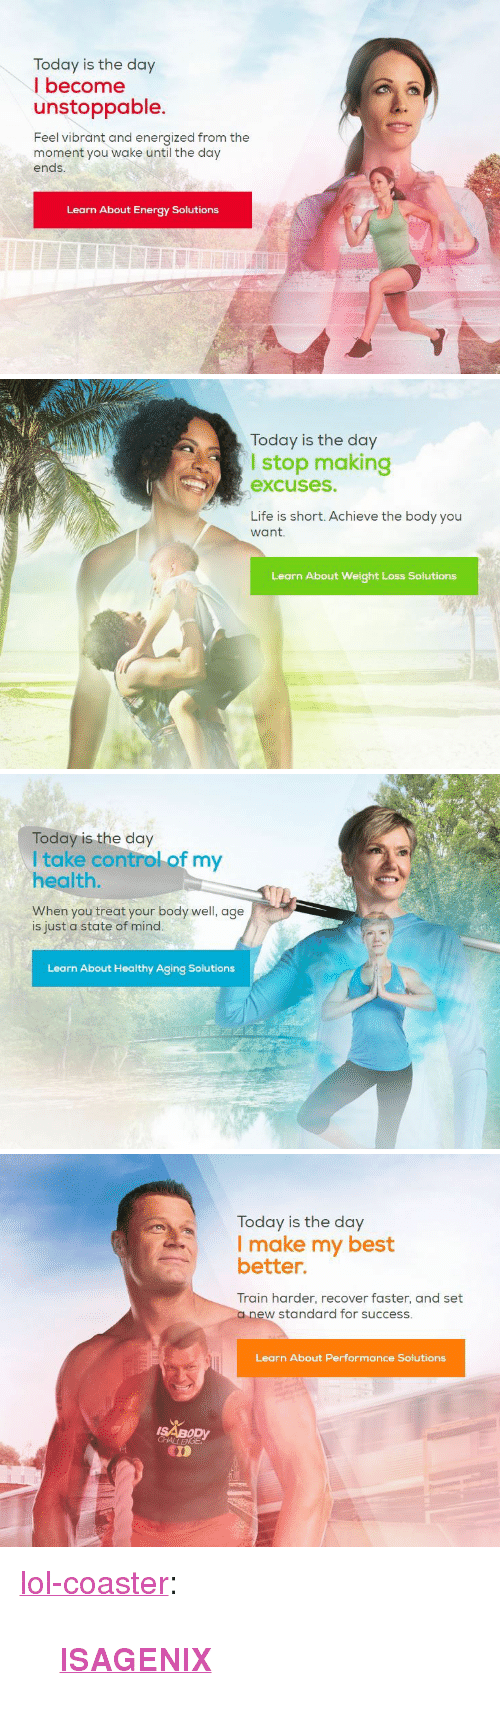 """Energized: Today is the day  I become  unstoppable.  Feel vibrant and energized from the  moment you wake until the day  ends  Learn About Energy Solutions   Today is the day  I stop making  excuses.  Life is short. Achieve the body you  want.  Learn About Weight Loss Solutions   Today is the day  I take control of my  health  When you treat your body well, age  is just a state of mind.  Learn About Healthy Aging Solutions   Today is the day  I make my best  better.  Train harder, recover faster, and set  a new standard for success.  Learn About Performance Solutions  ISABODY  CD <p><a href=""""http://lol-coaster.tumblr.com/post/159839994492/isagenix"""" class=""""tumblr_blog"""">lol-coaster</a>:</p><blockquote><p><b><a href=""""https://gohealthful.isagenix.com/"""">ISAGENIX</a></b></p></blockquote>"""